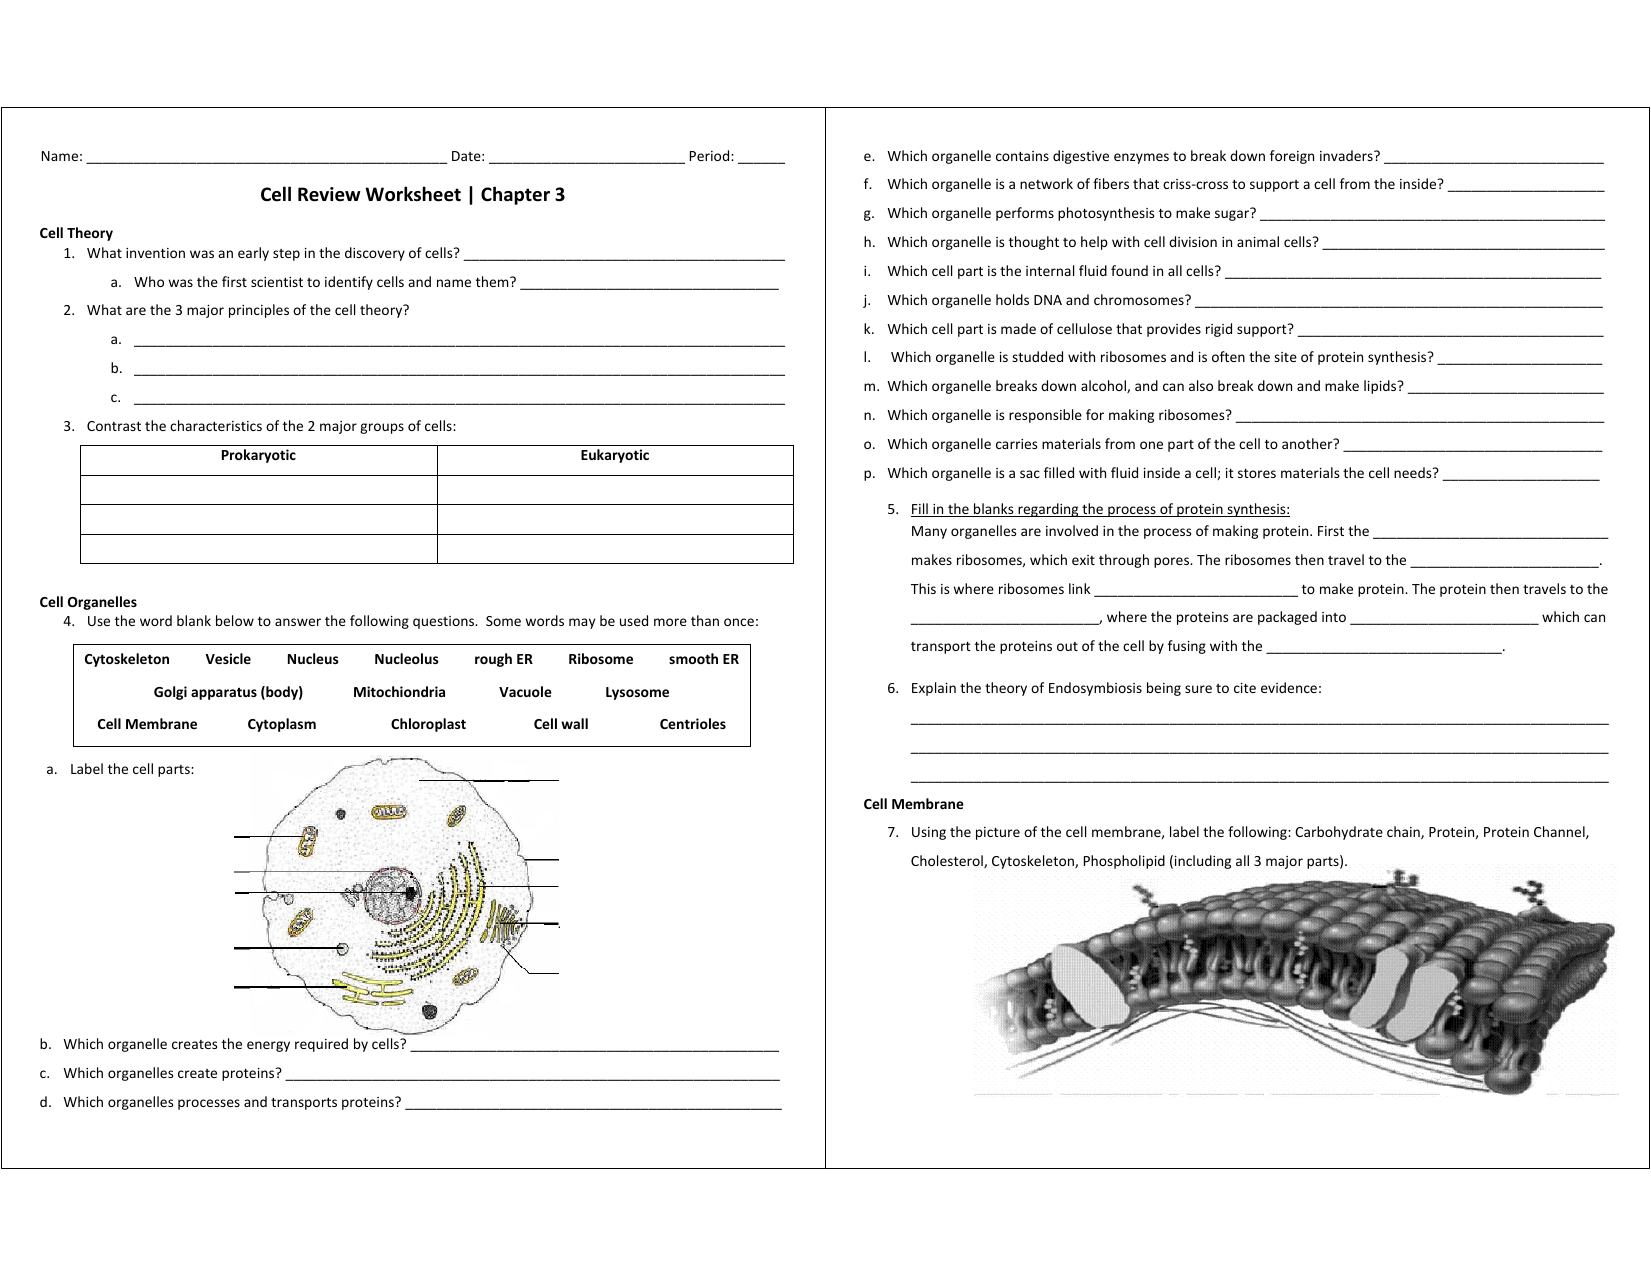 Cell Review Worksheet